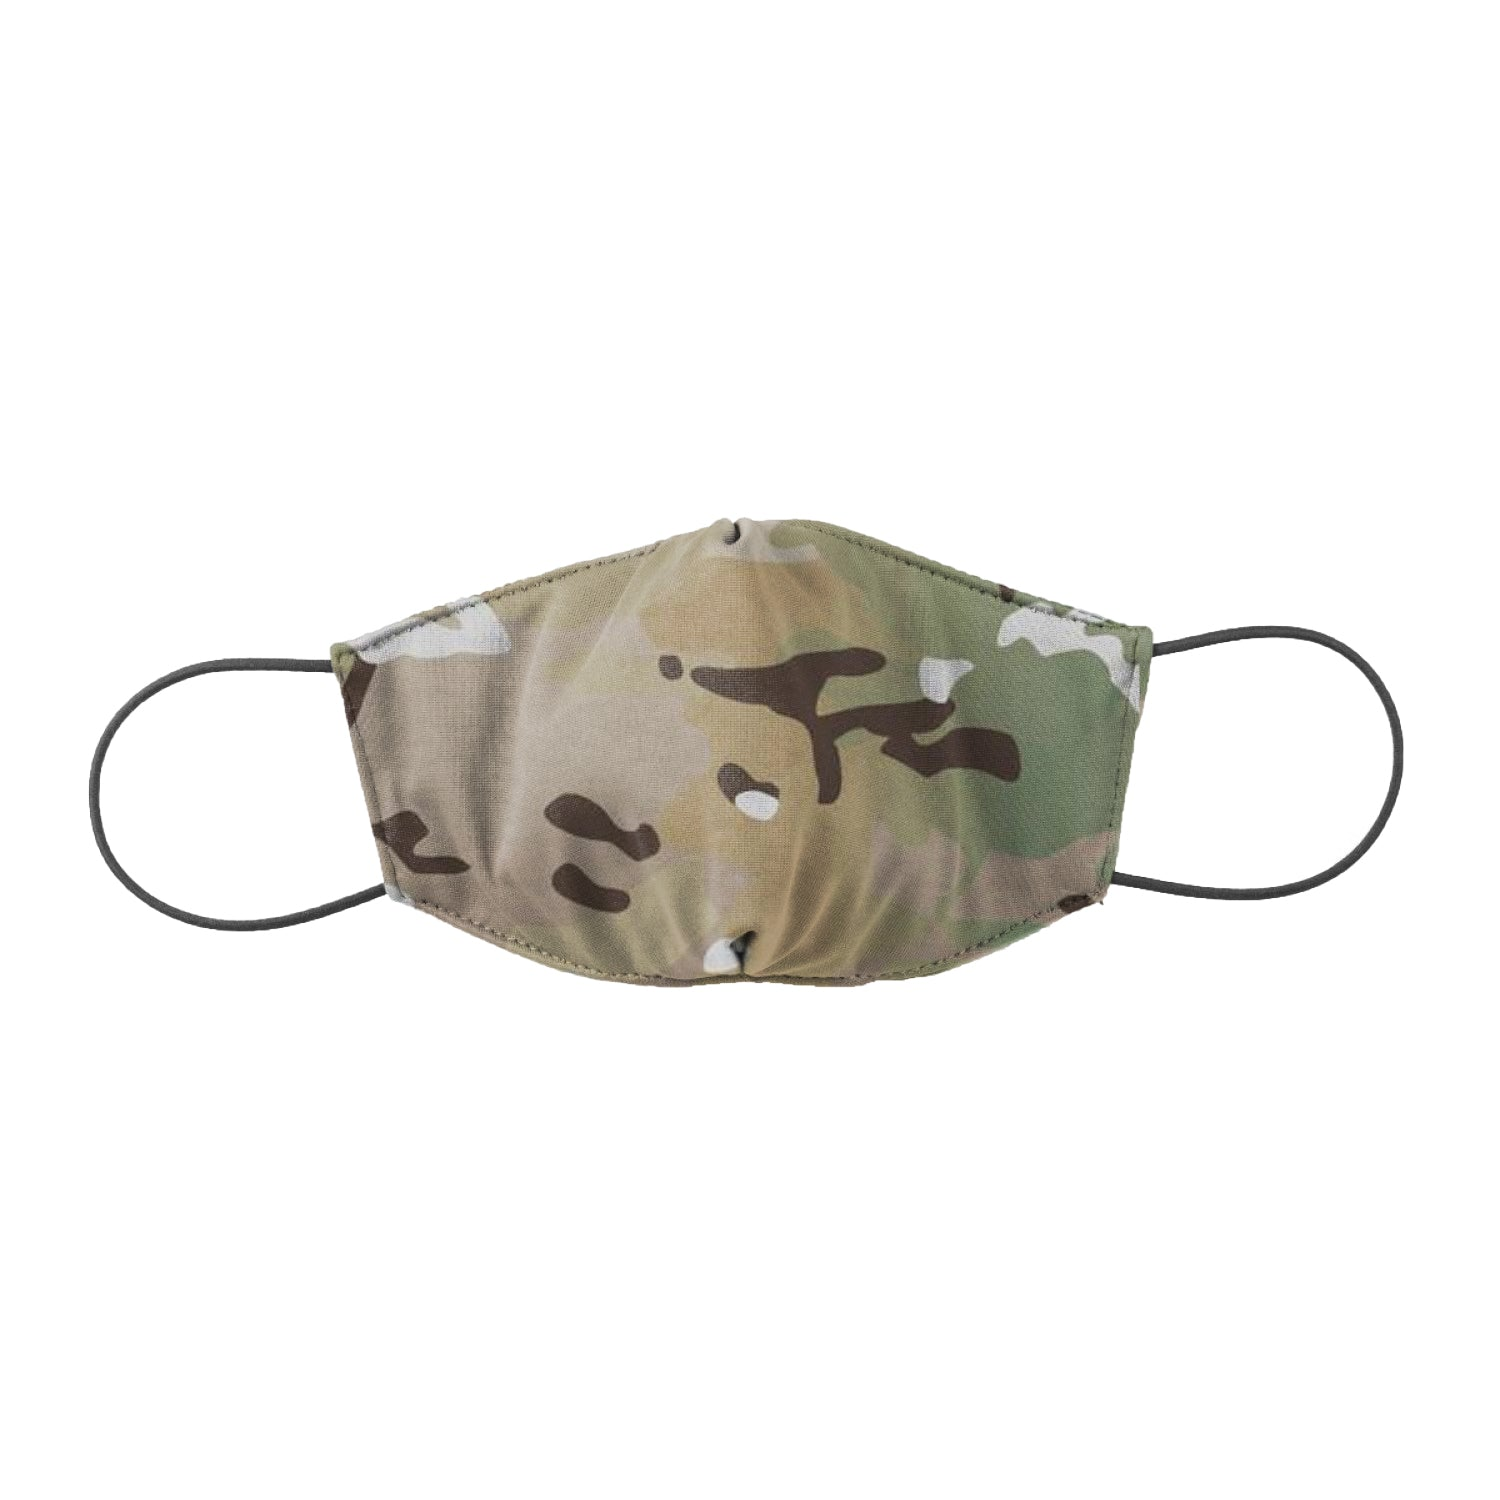 Multicam Vizard Face Mask by Giena Tactics